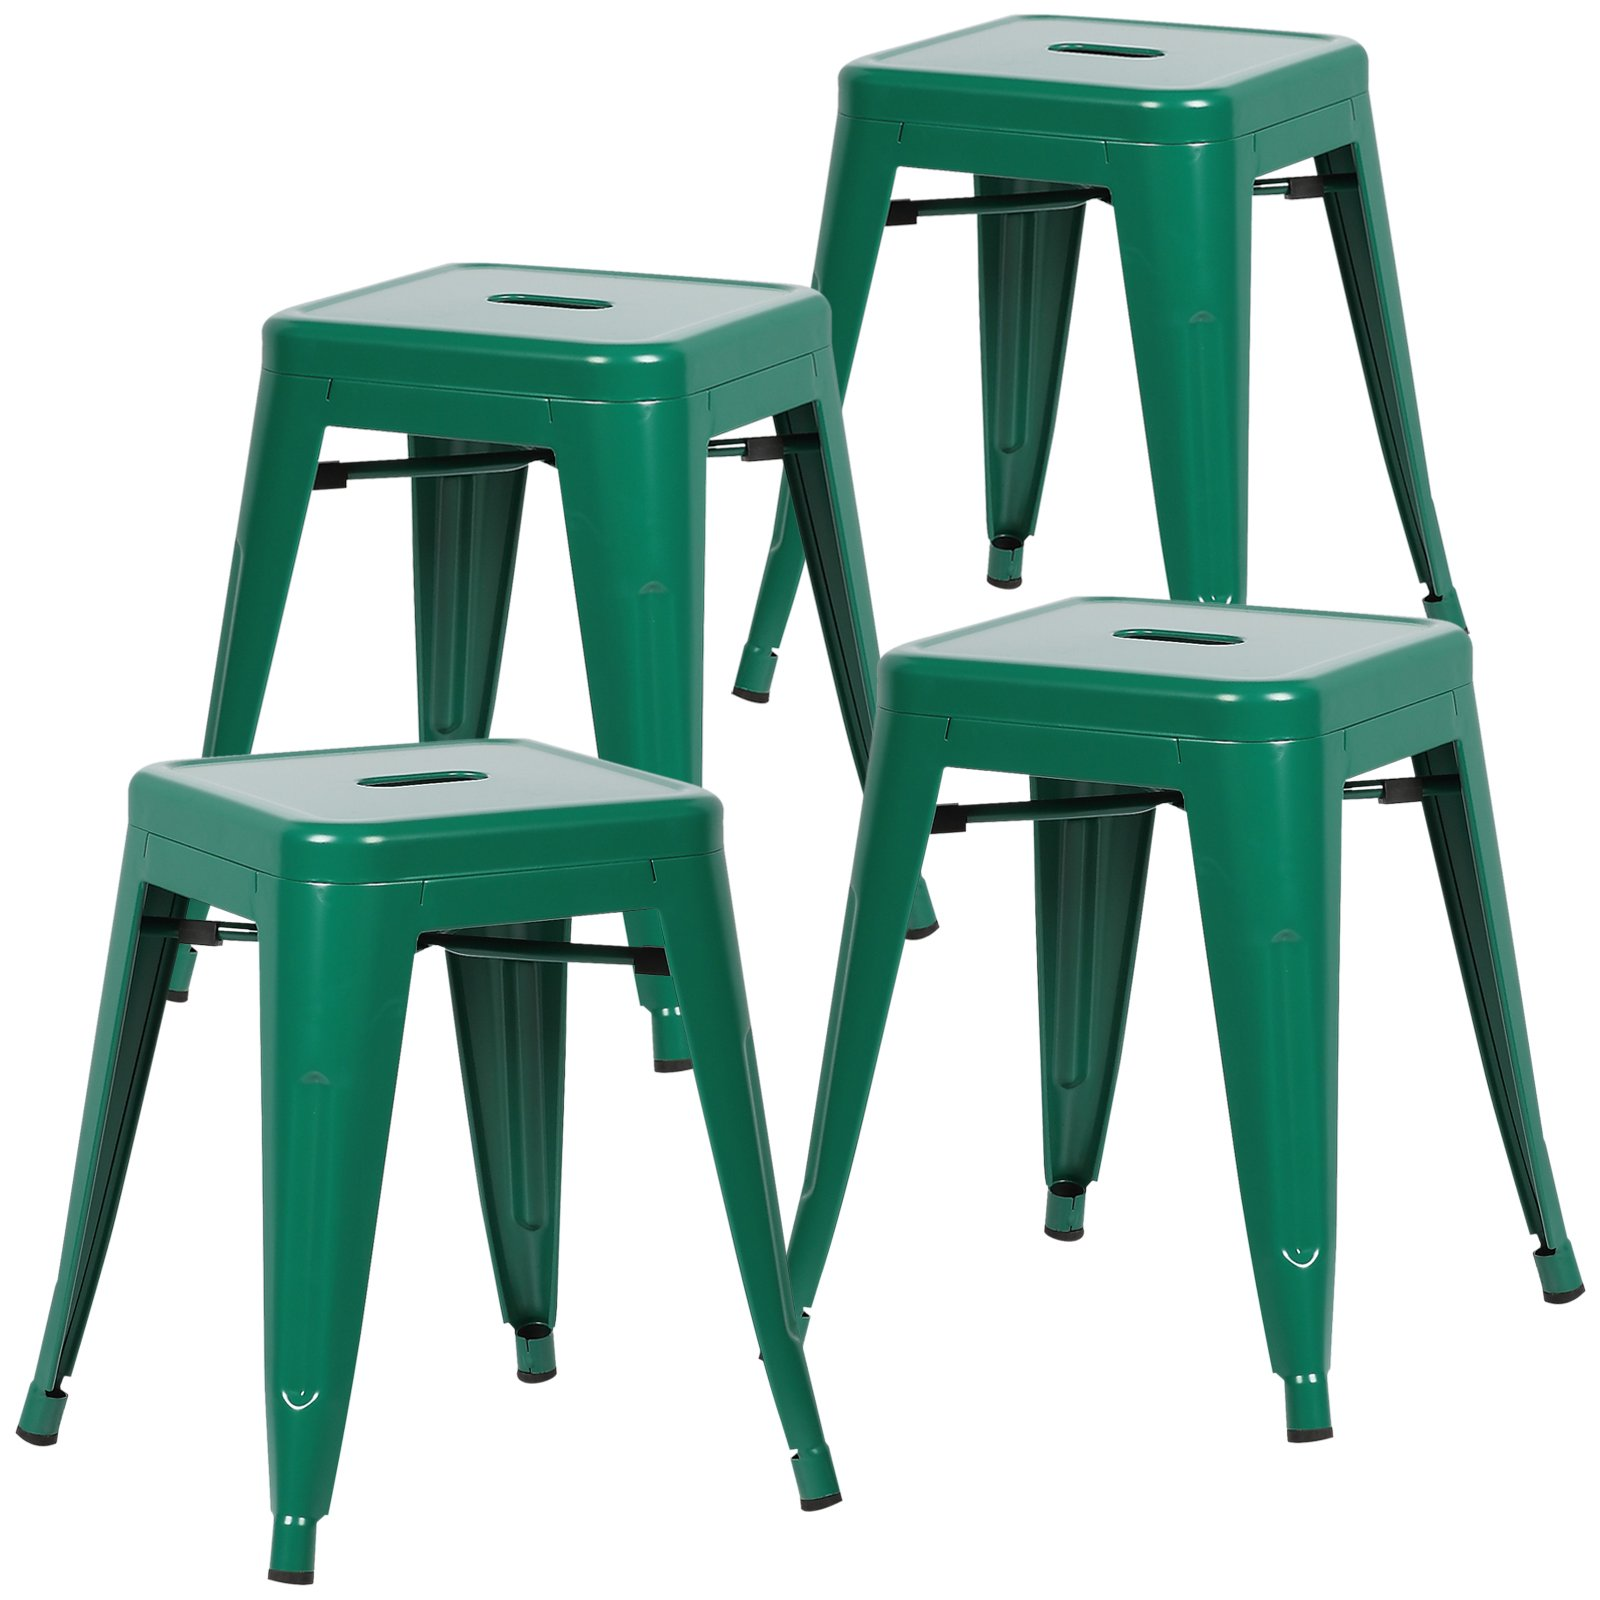 Poly and Bark Trattoria 18 Inch Metal Side Dining Chair and Bar Stool in Dark Green (Set of 4) by POLY & BARK